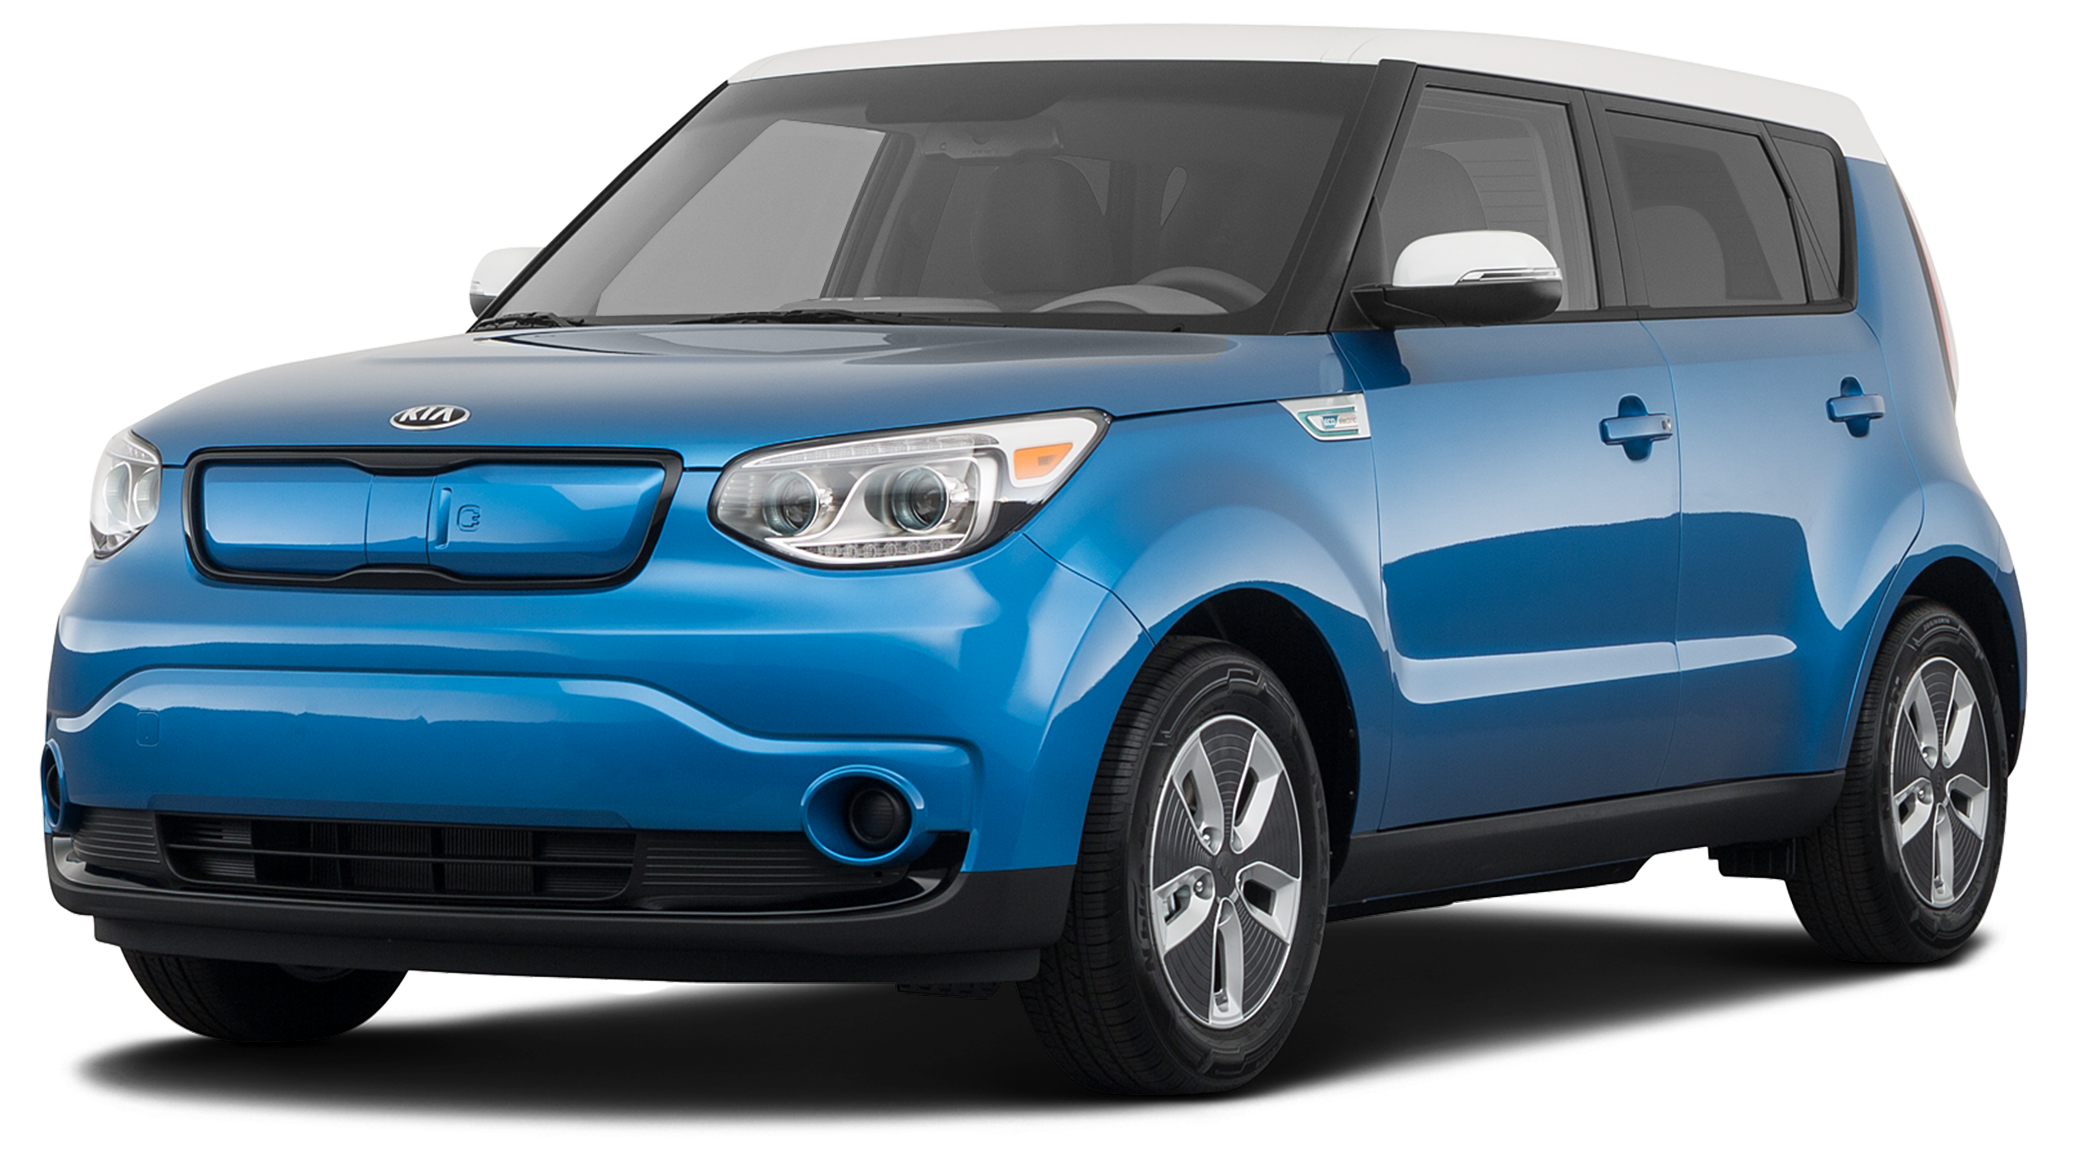 2019 kia soul ev for sale in waldorf md kia of waldorf. Black Bedroom Furniture Sets. Home Design Ideas